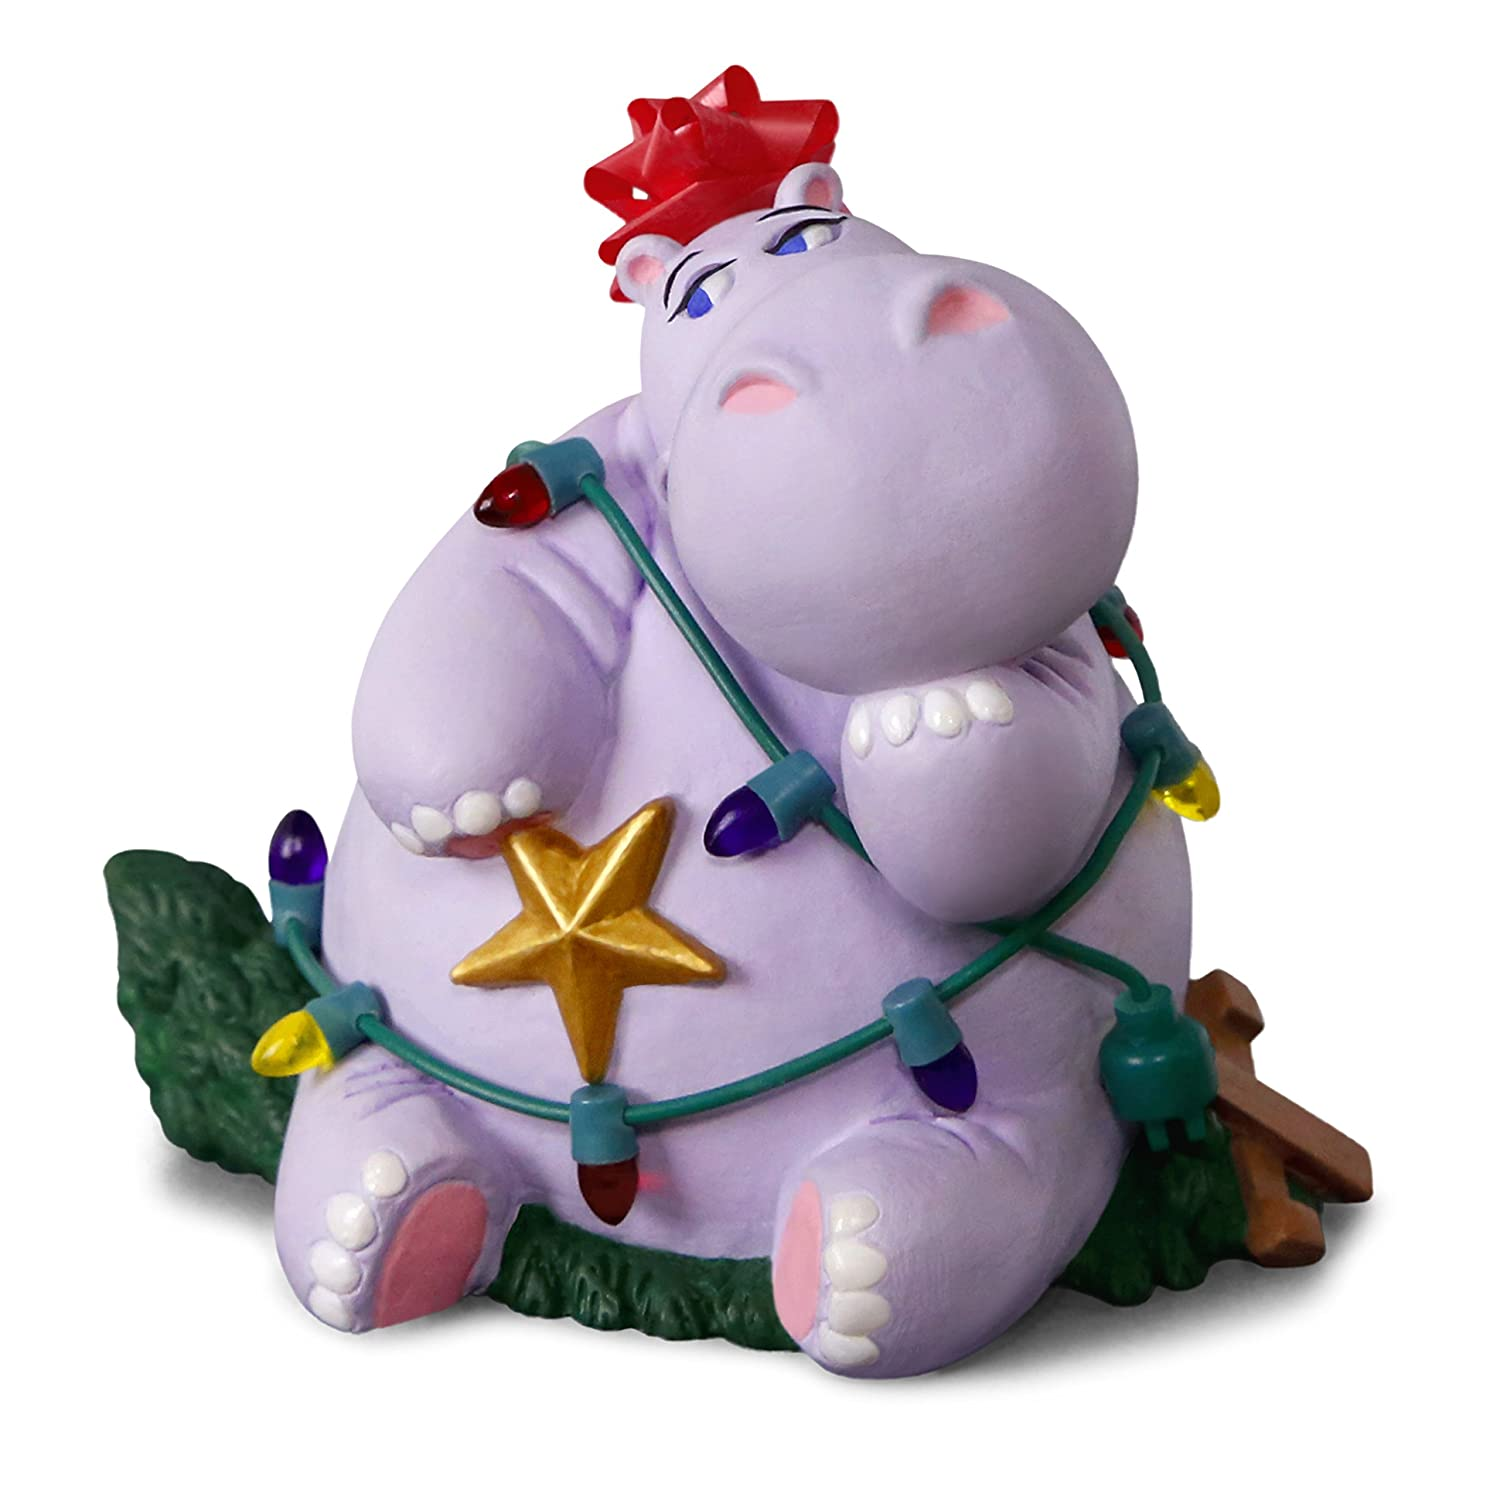 I Want A Hippocampus For Christmas.Hallmark Keepsake Christmas Ornament 2018 Year Dated I Want A Hippopotamus For Christmas With Music